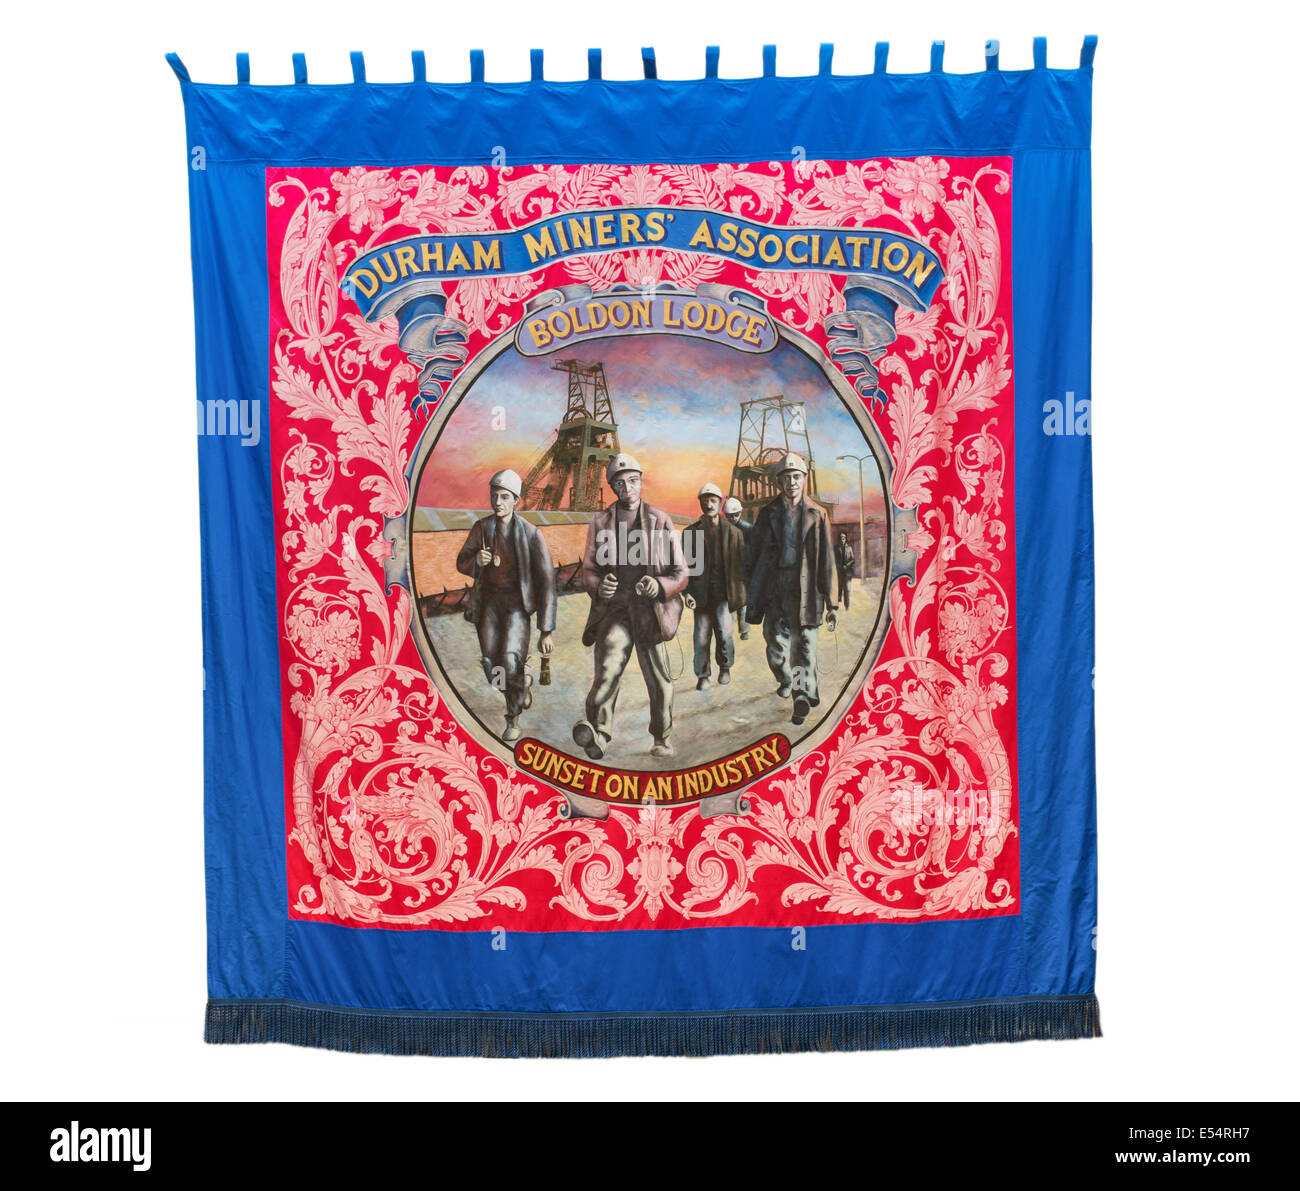 Durham Miners' Association Boldon Lodge banner, seen at Bede's World, Jarrow, north east England, UK - Stock Image